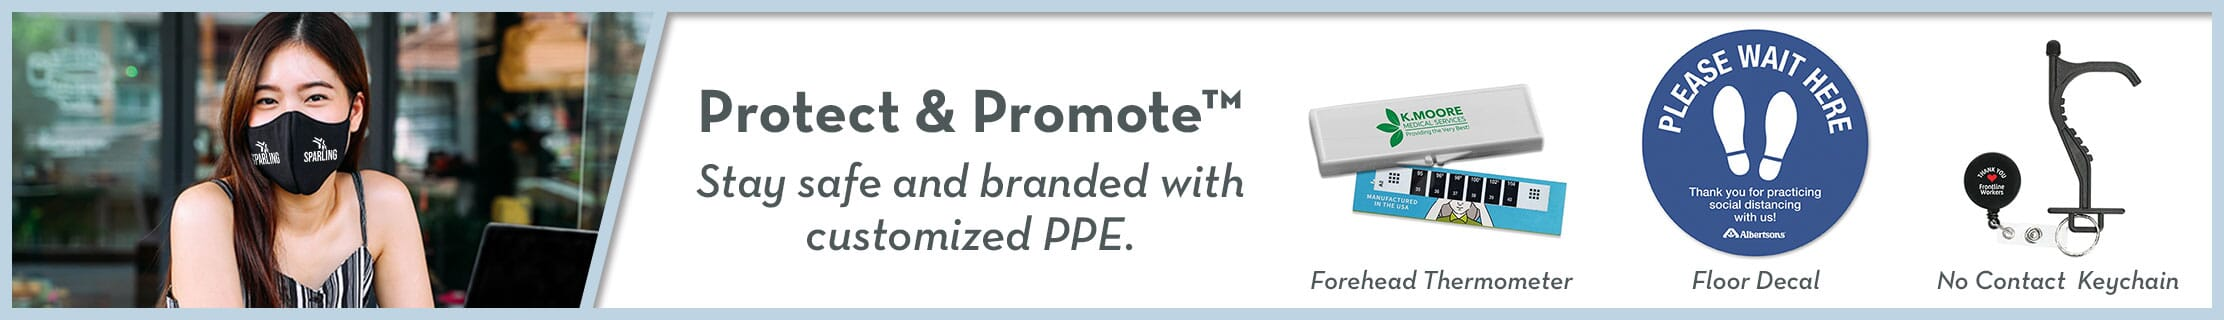 Protect and Promote with PPE